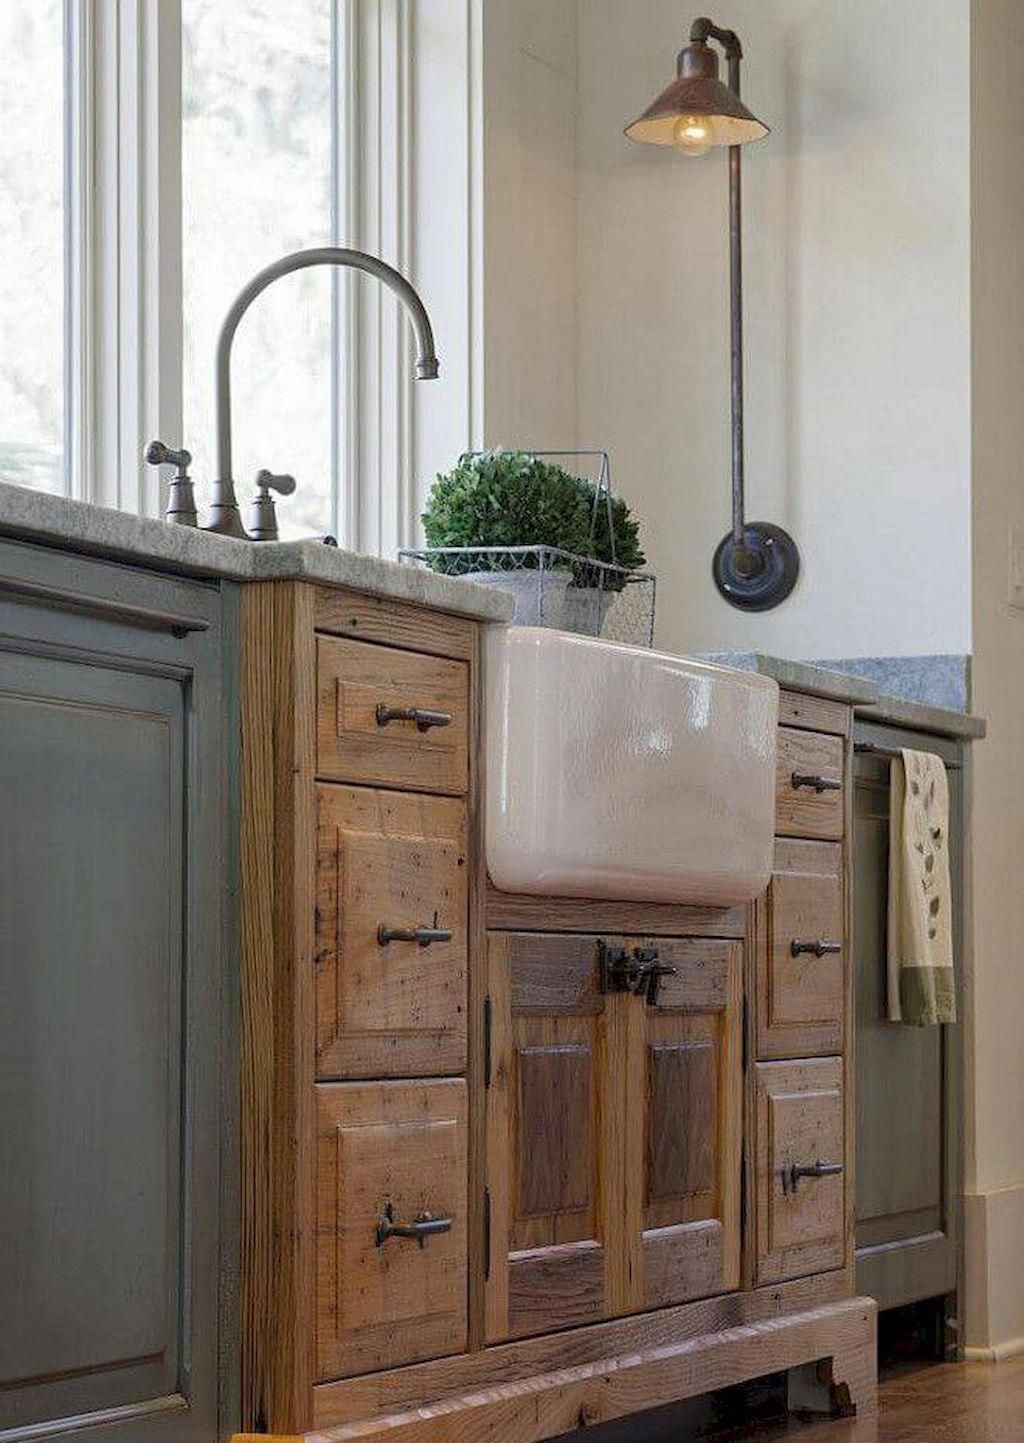 Local Kitchen Remodeling When Buying A Sofa Make Sure That You Pull The Cushions Kitchen Cabinet Design Farmhouse Kitchen Cabinets Kitchen Design